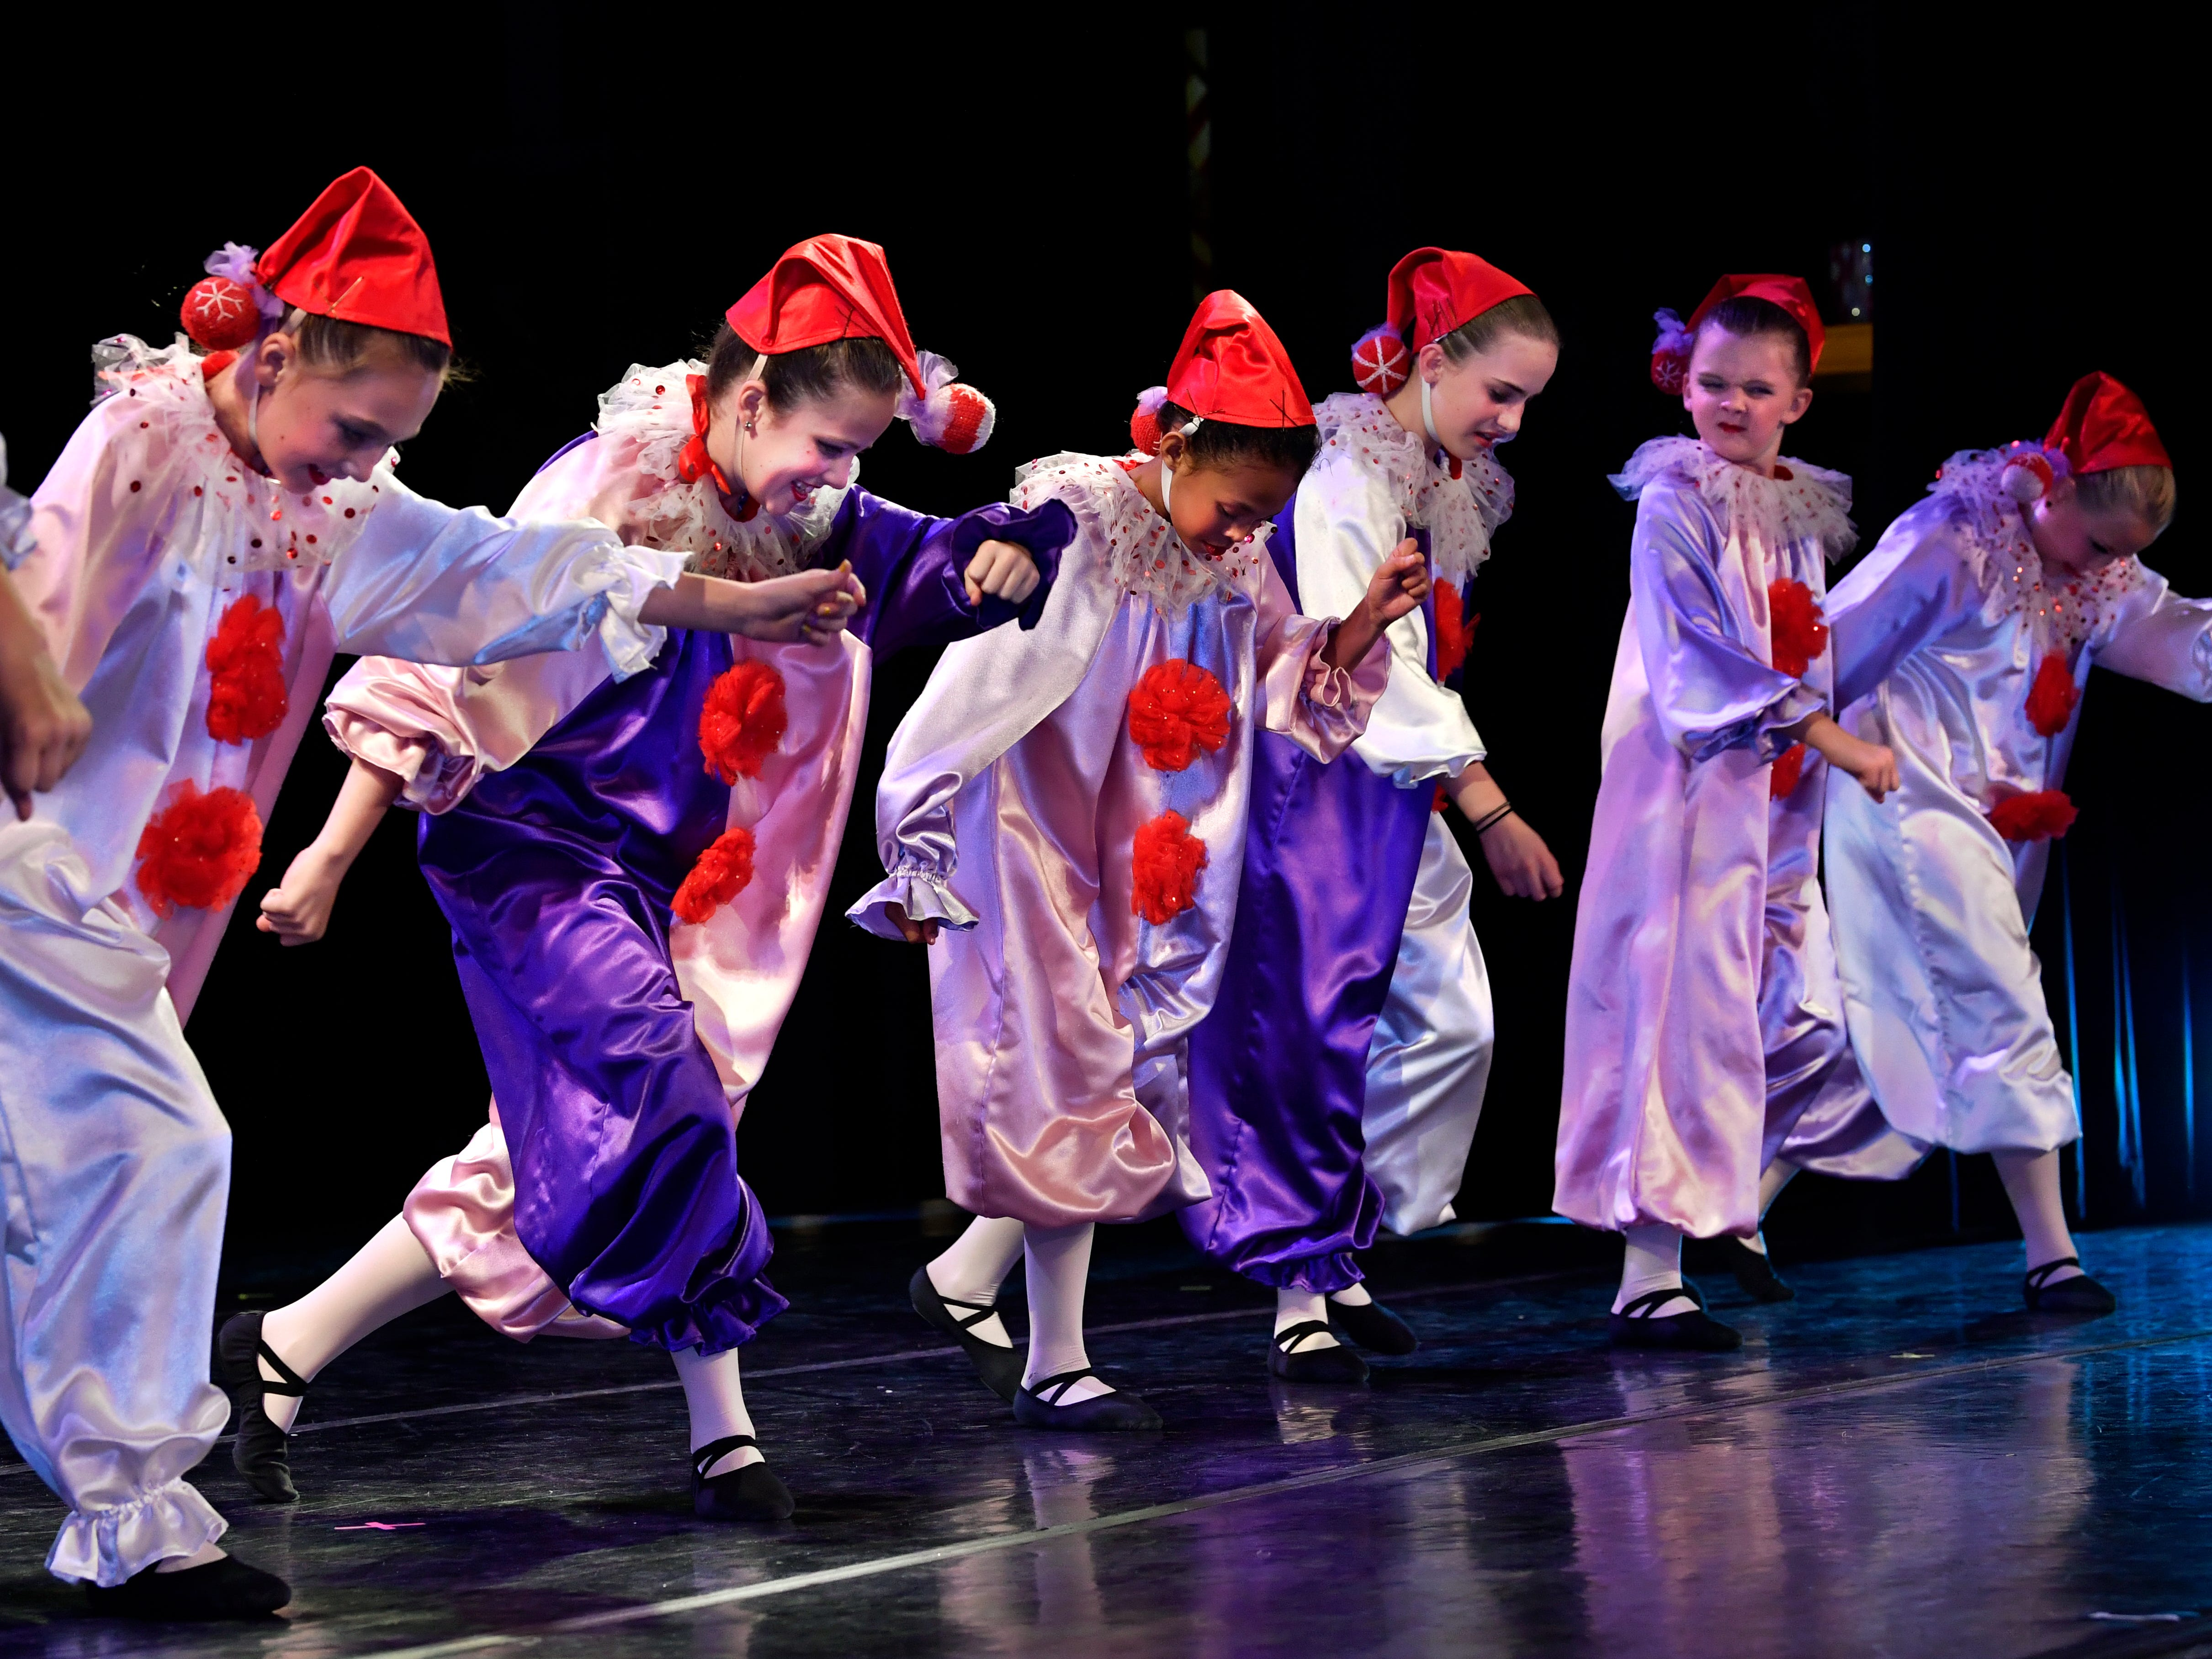 The Polichinelle clowns perform during the Land of the Sweets scene during rehearsal for The Nutcracker Wednesday Nov. 14, 2018. This was the 31st year for the Abilene Ballet Theatre production, held at the Paramount Theatre.